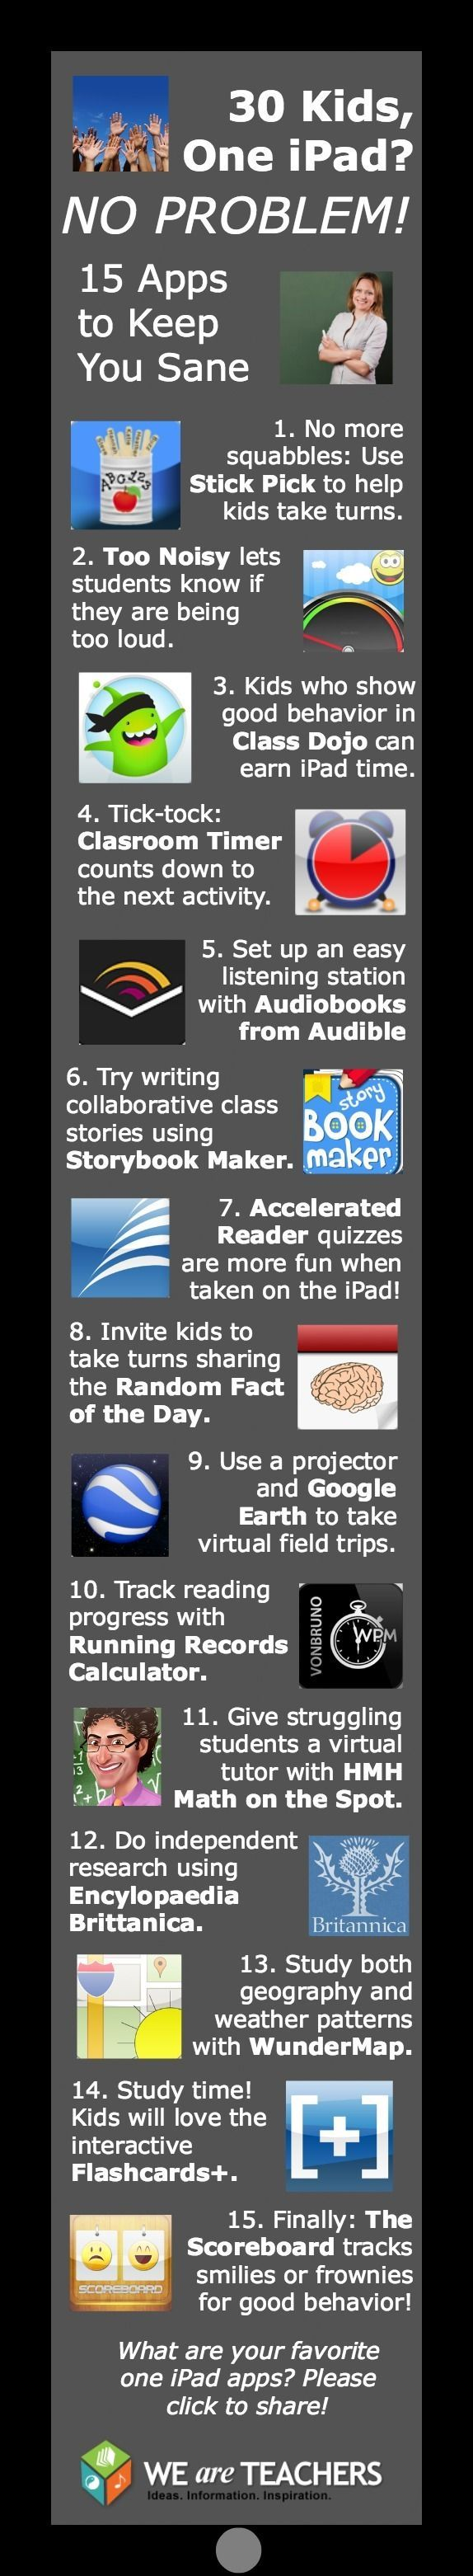 15 apps that work great with a one iPad setup AND help to keep kids on task and engaged with what you are learning.